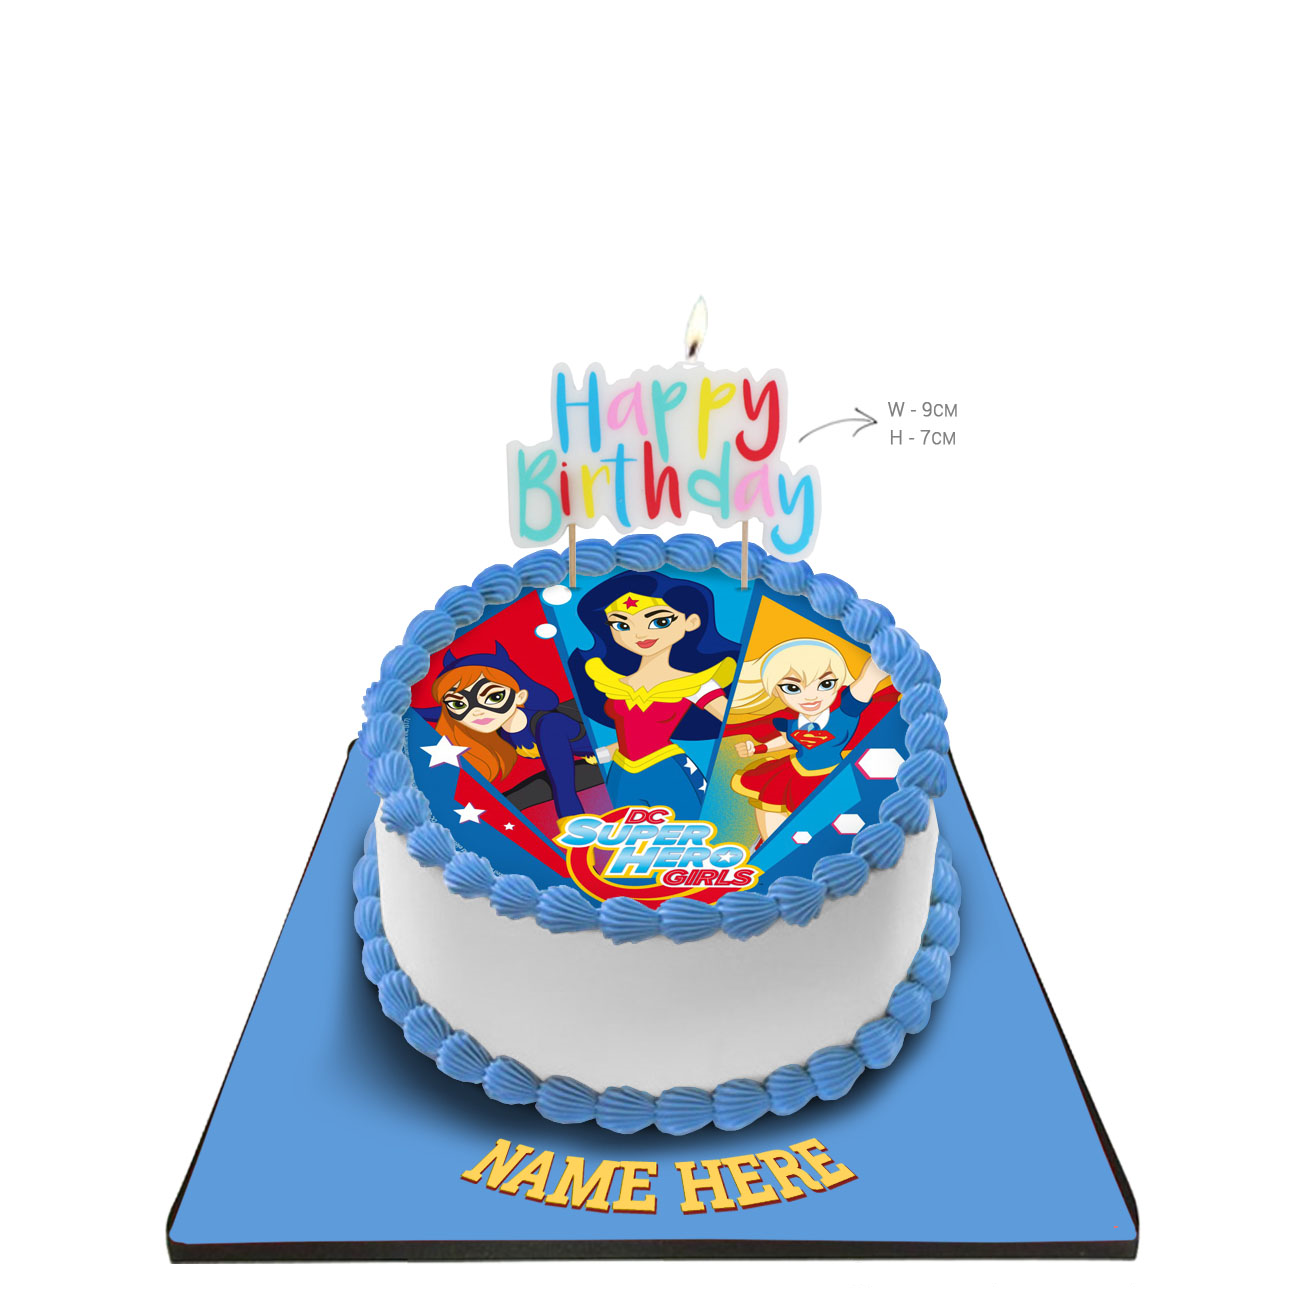 Groovy Super Hero Girls Cake With Happy Birthday Candle Funny Birthday Cards Online Fluifree Goldxyz